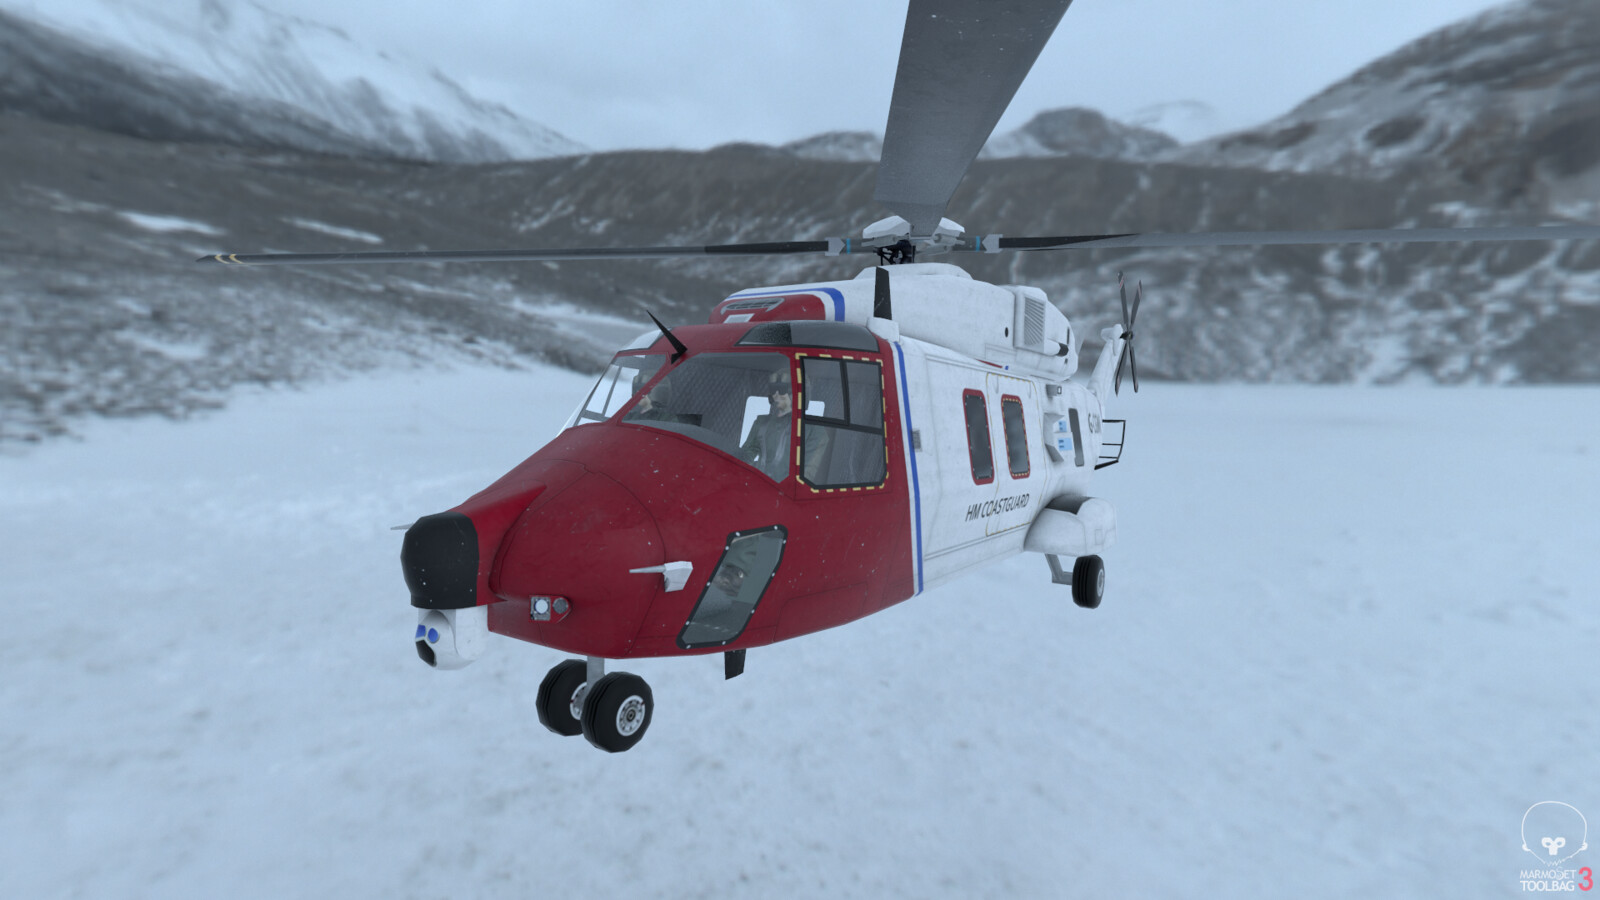 Eurocopter NH90, coastguard colours. Low-poly. Rendered in Marmoset